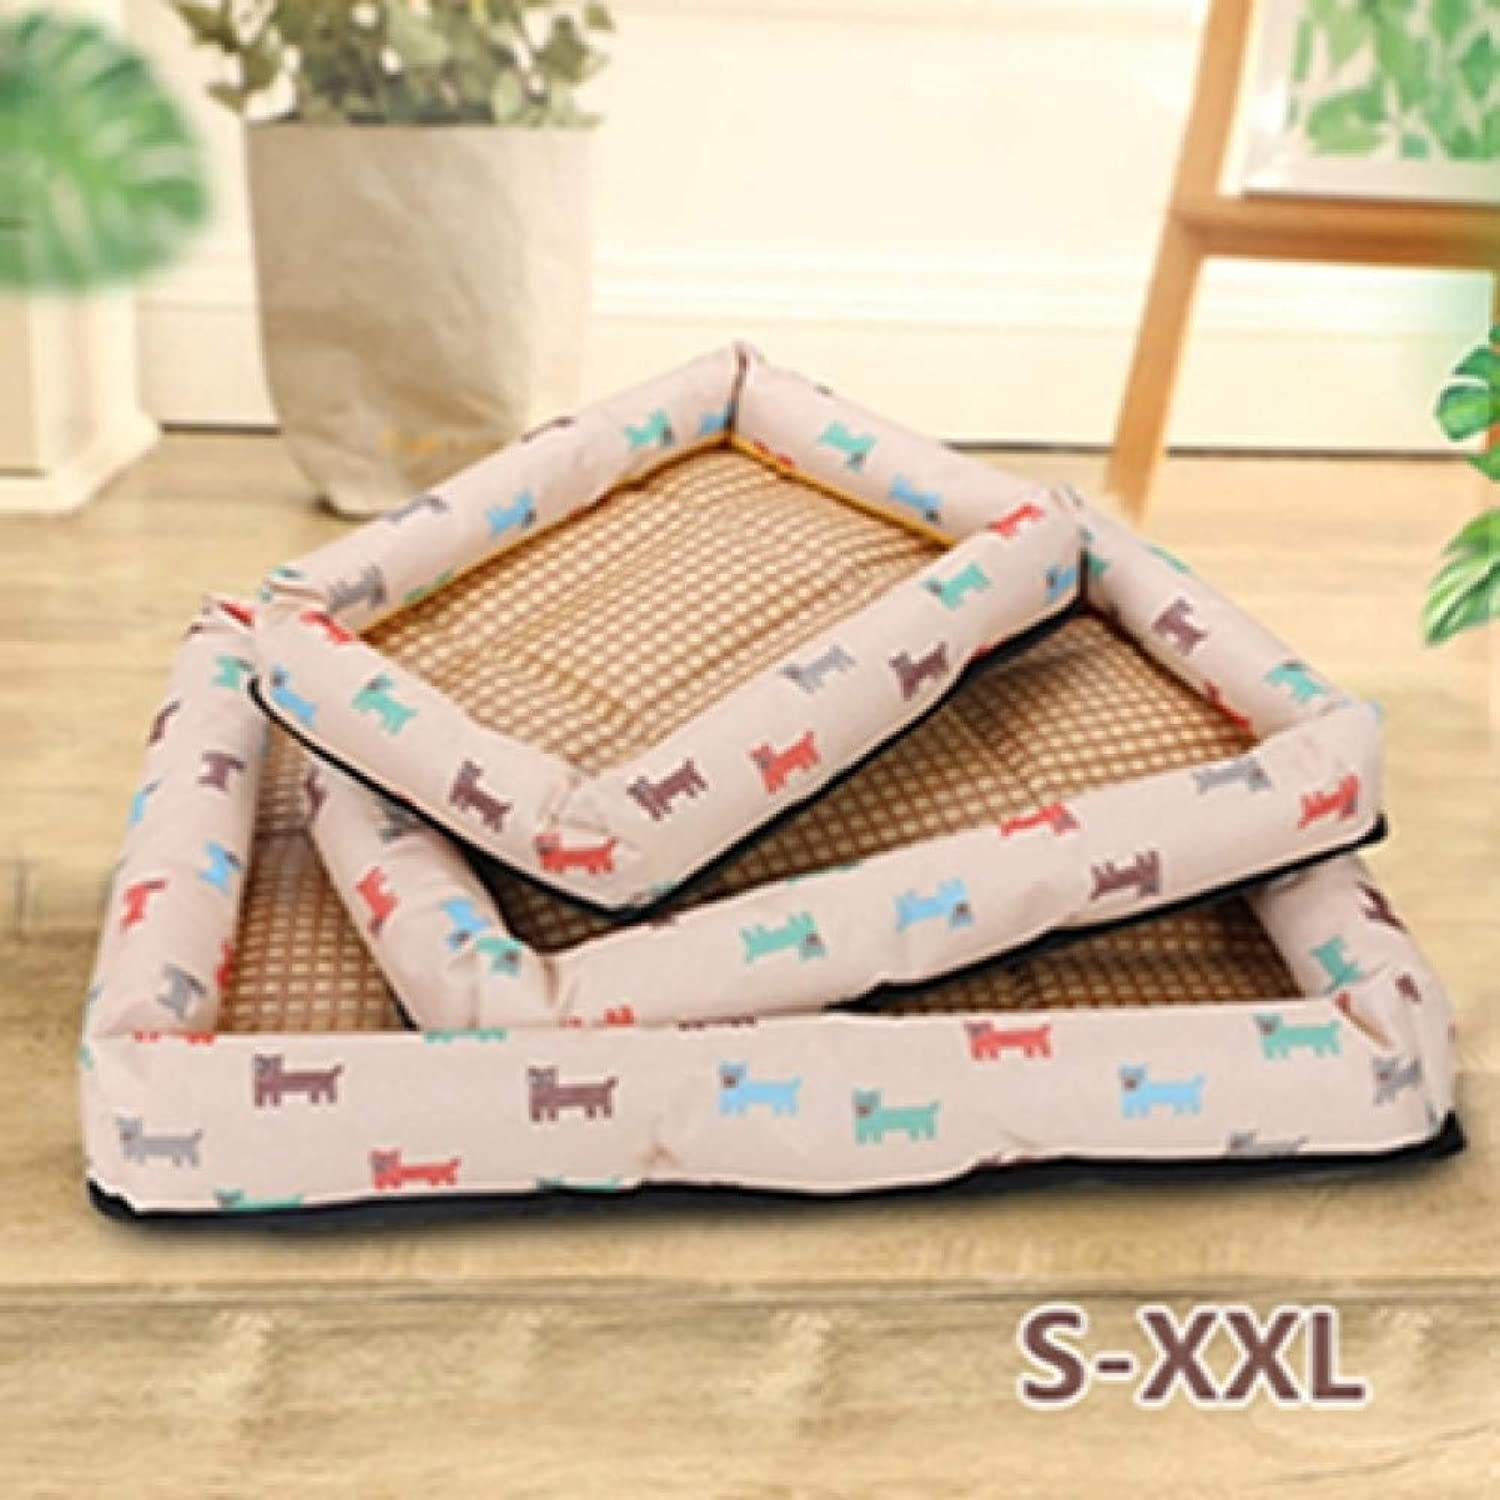 CZHCFF Summer cool dog bed mat puppy cat sleeping soft nest wicker Material basket dog cat House pet products for